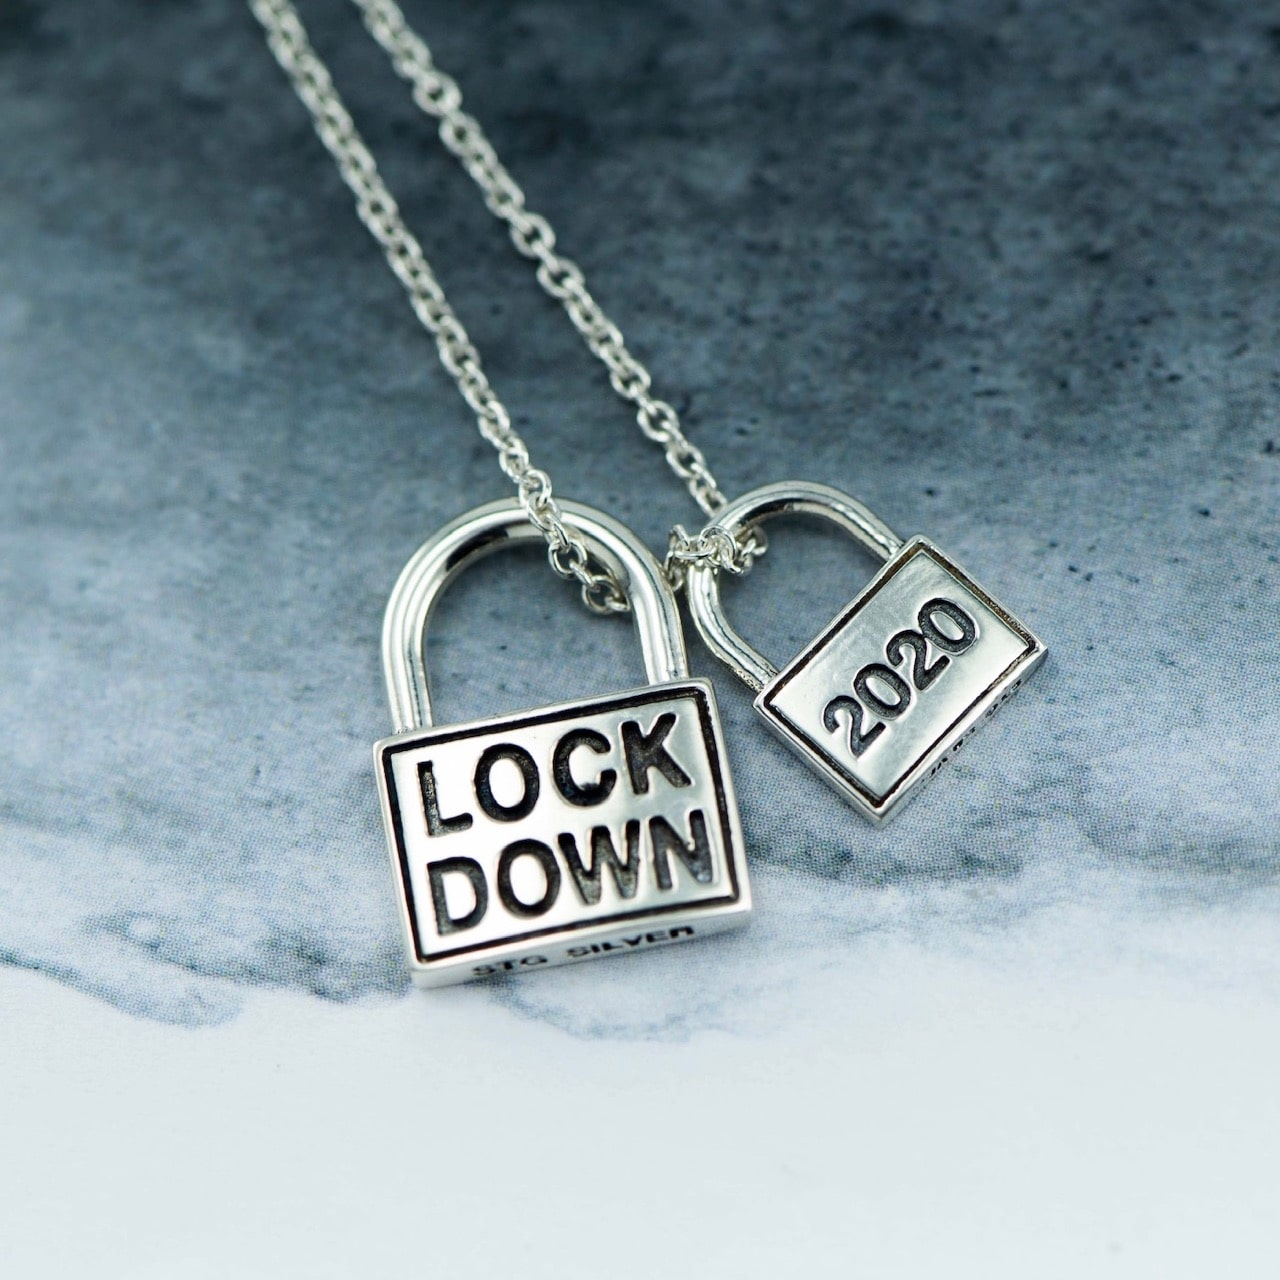 Lockdown 2020 jewellery